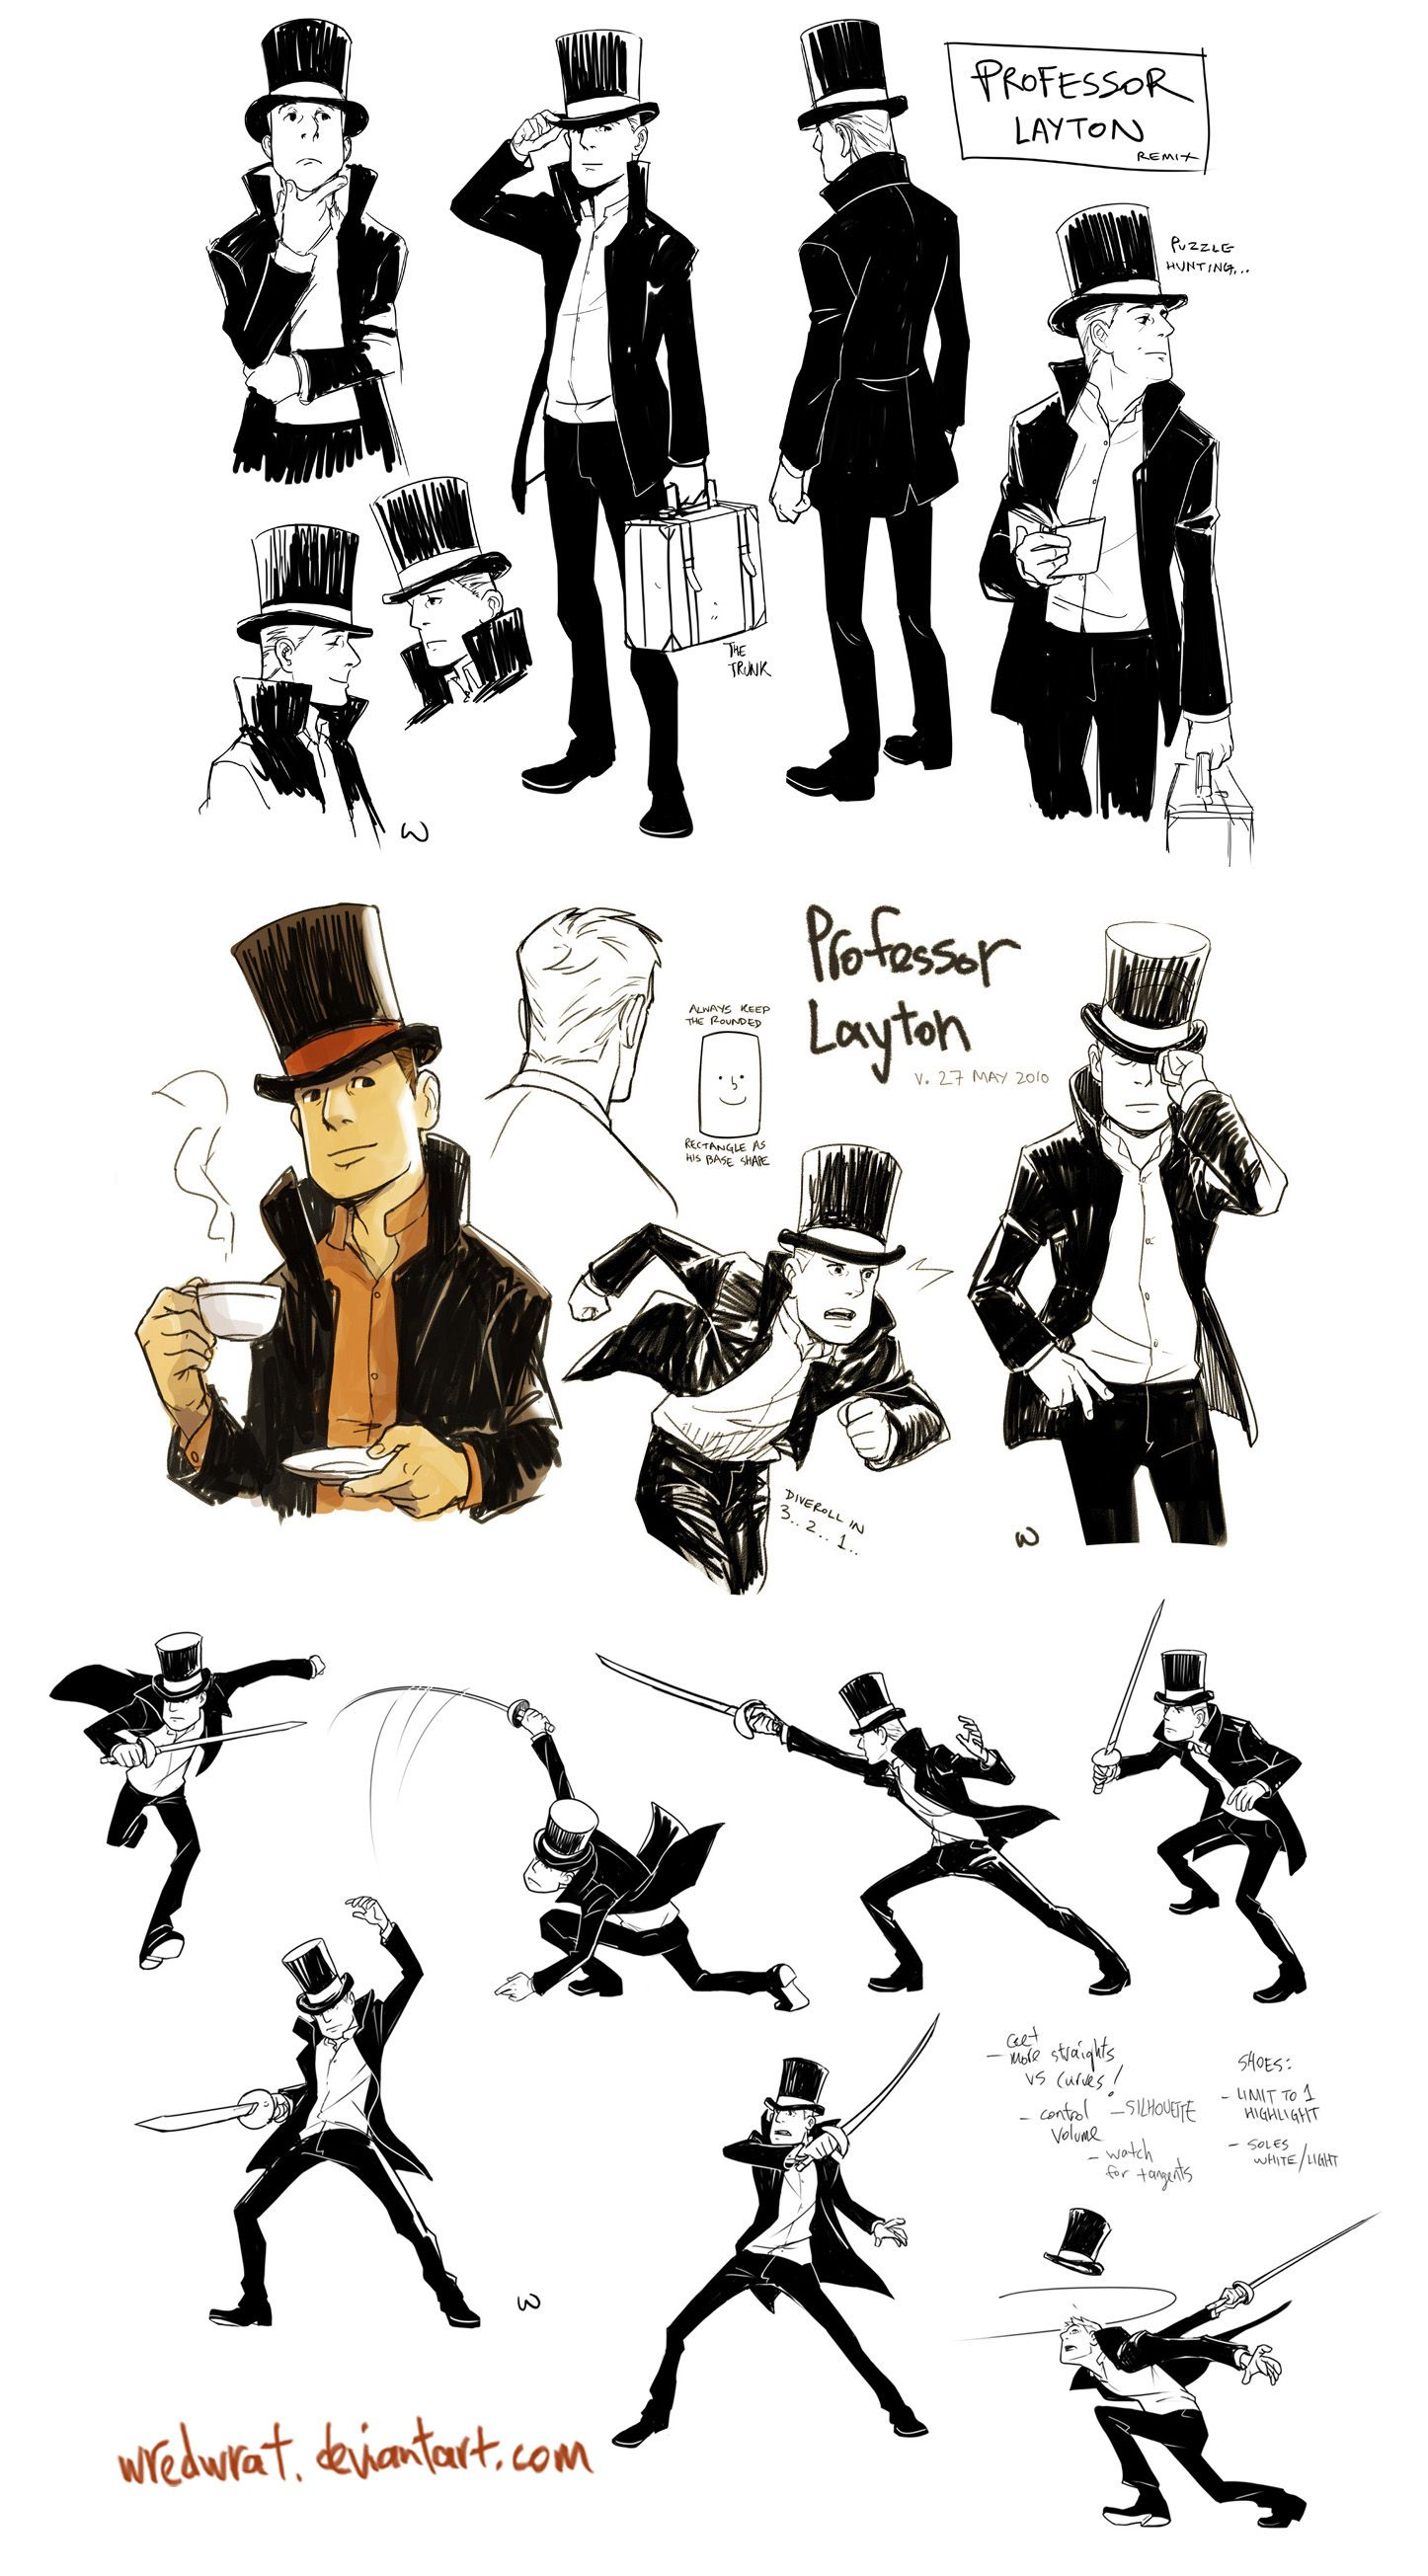 Professor Layton wratstyled by *wredwrat on deviantART ★ || CHARACTER DESIGN REFERENCES™ (https://www.facebook.com/CharacterDesignReferences & https://www.pinterest.com/characterdesigh) • Love Character Design? Join the #CDChallenge (link→ https://www.facebook.com/groups/CharacterDesignChallenge) Share your unique vision of a theme, promote your art in a community of over 50.000 artists! || ★